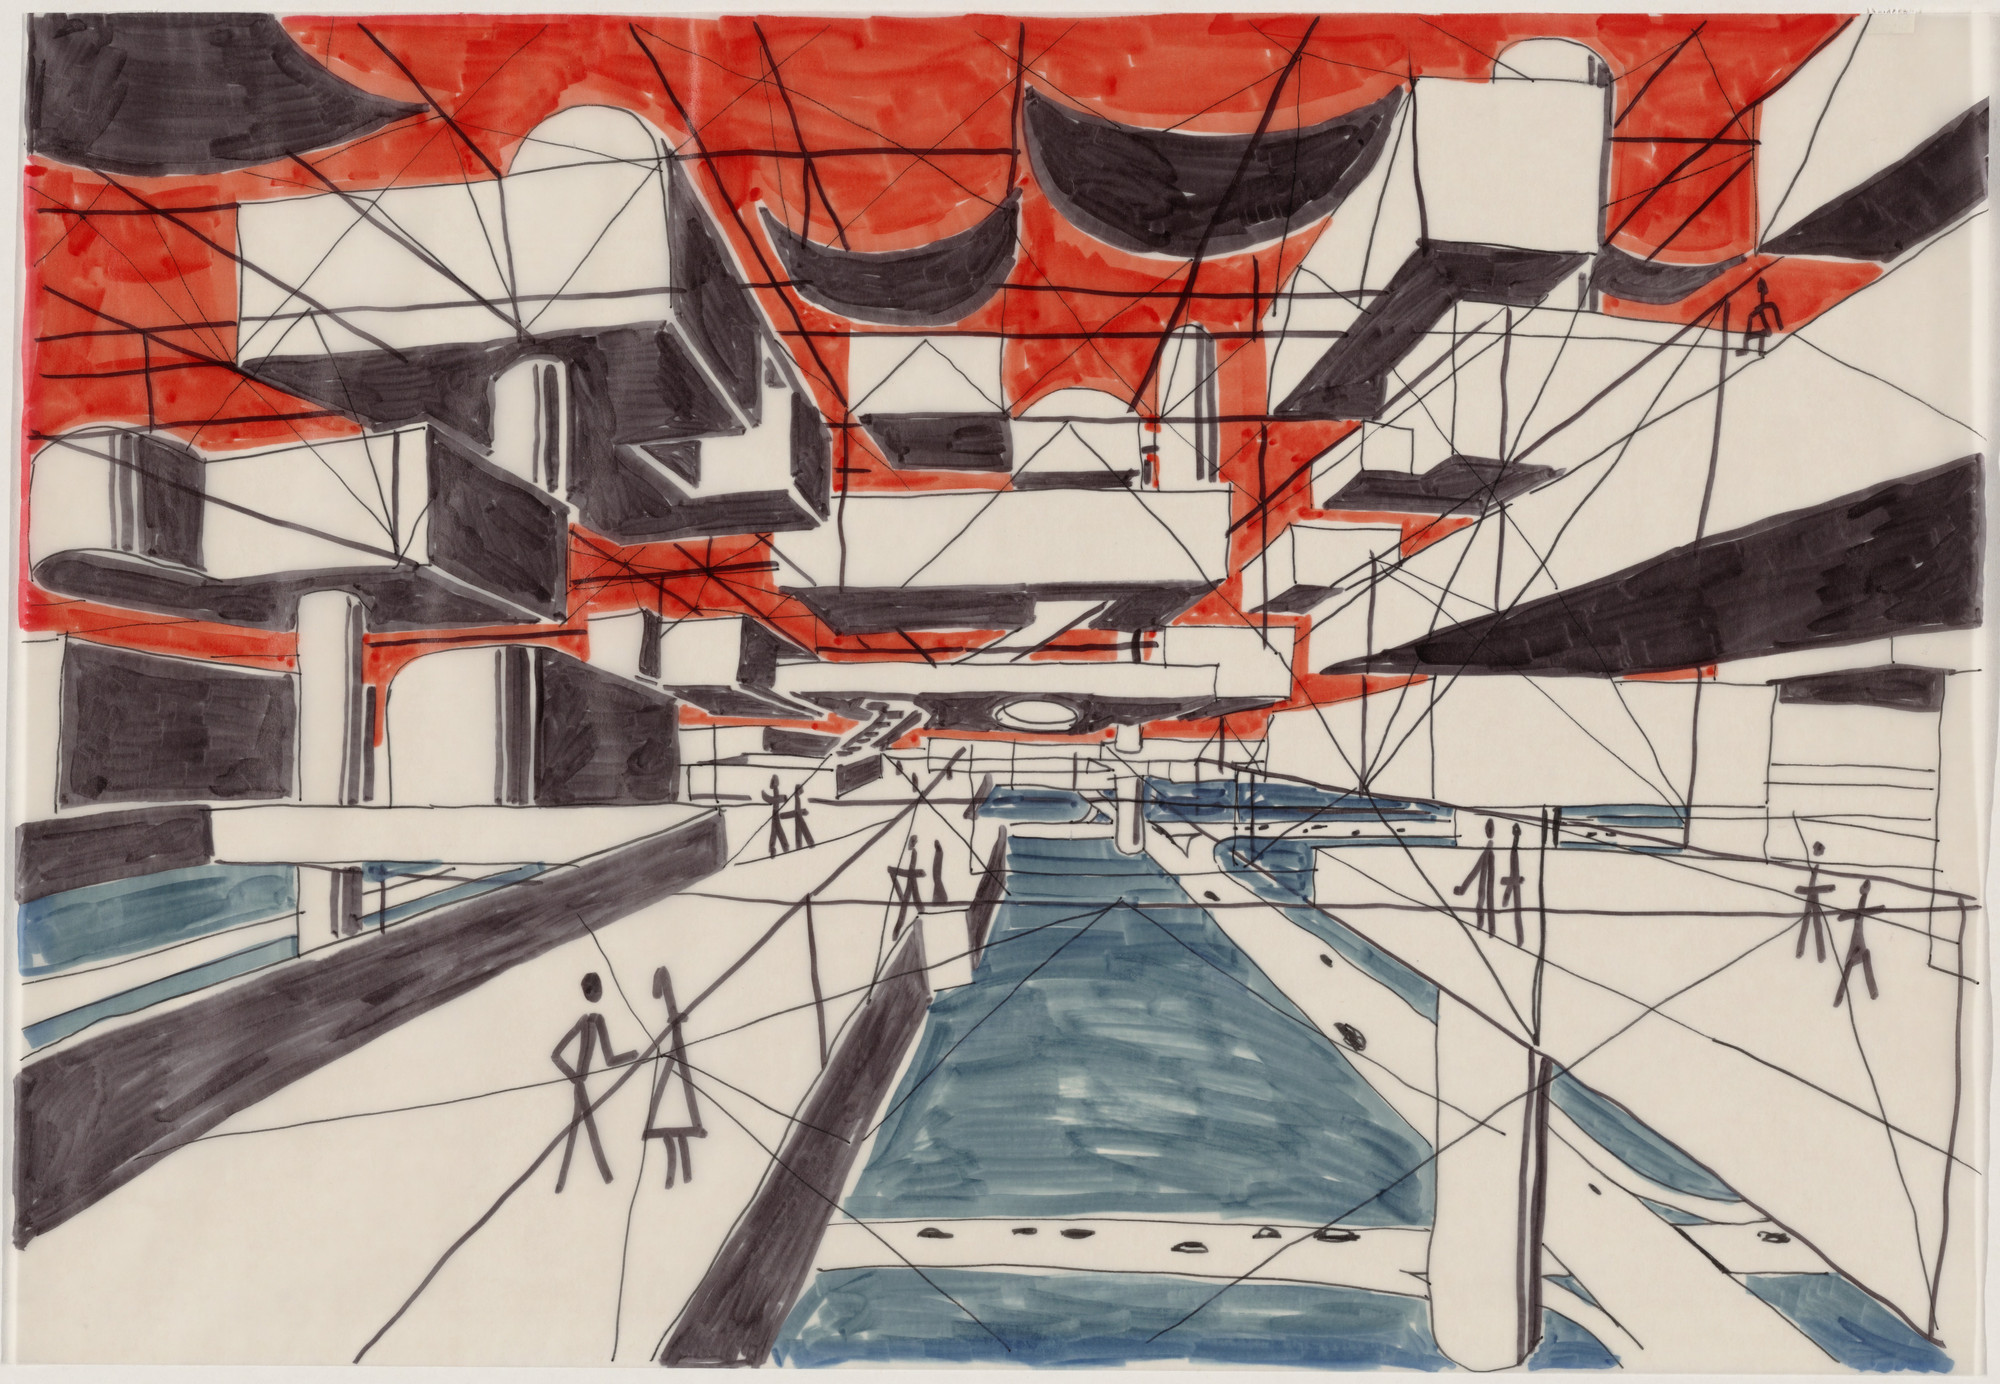 Yona Friedman. Spatial City, project, Perspective. 1958-59